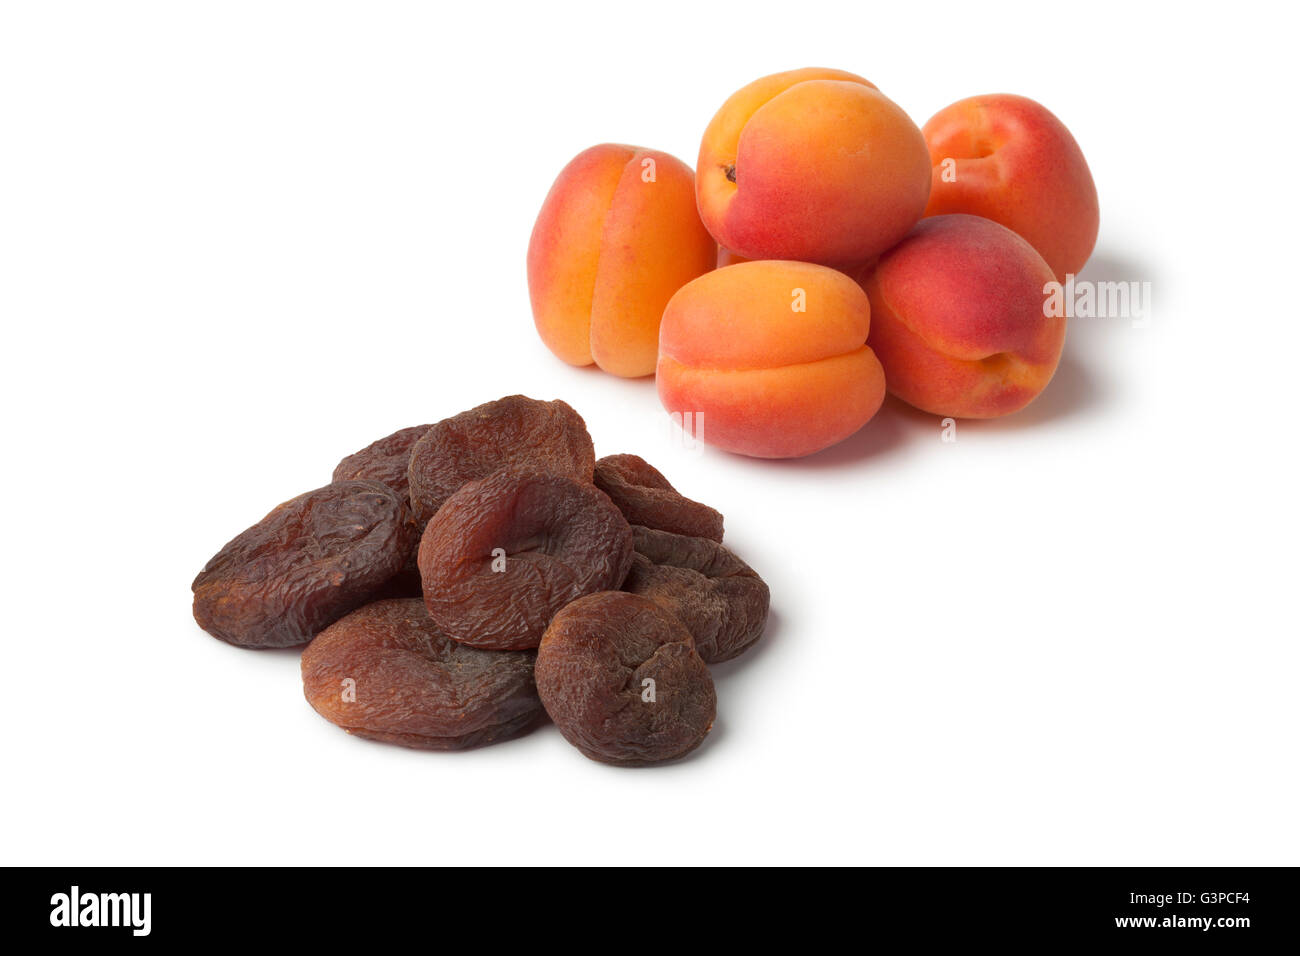 Healthy fresh and sun dried apricot fruit on white background - Stock Image